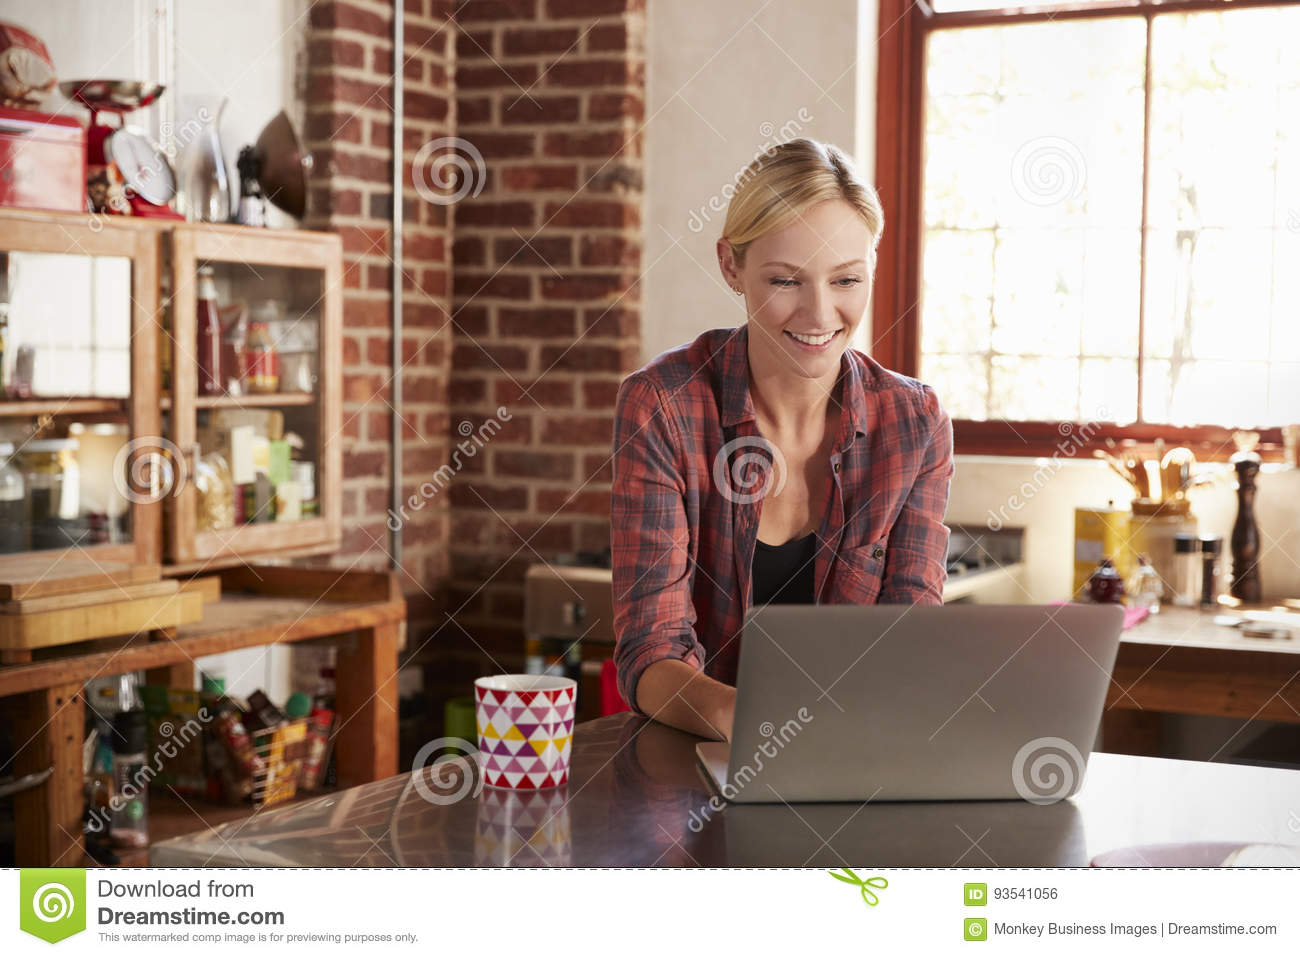 Young woman using computer in kitchen, close up front view